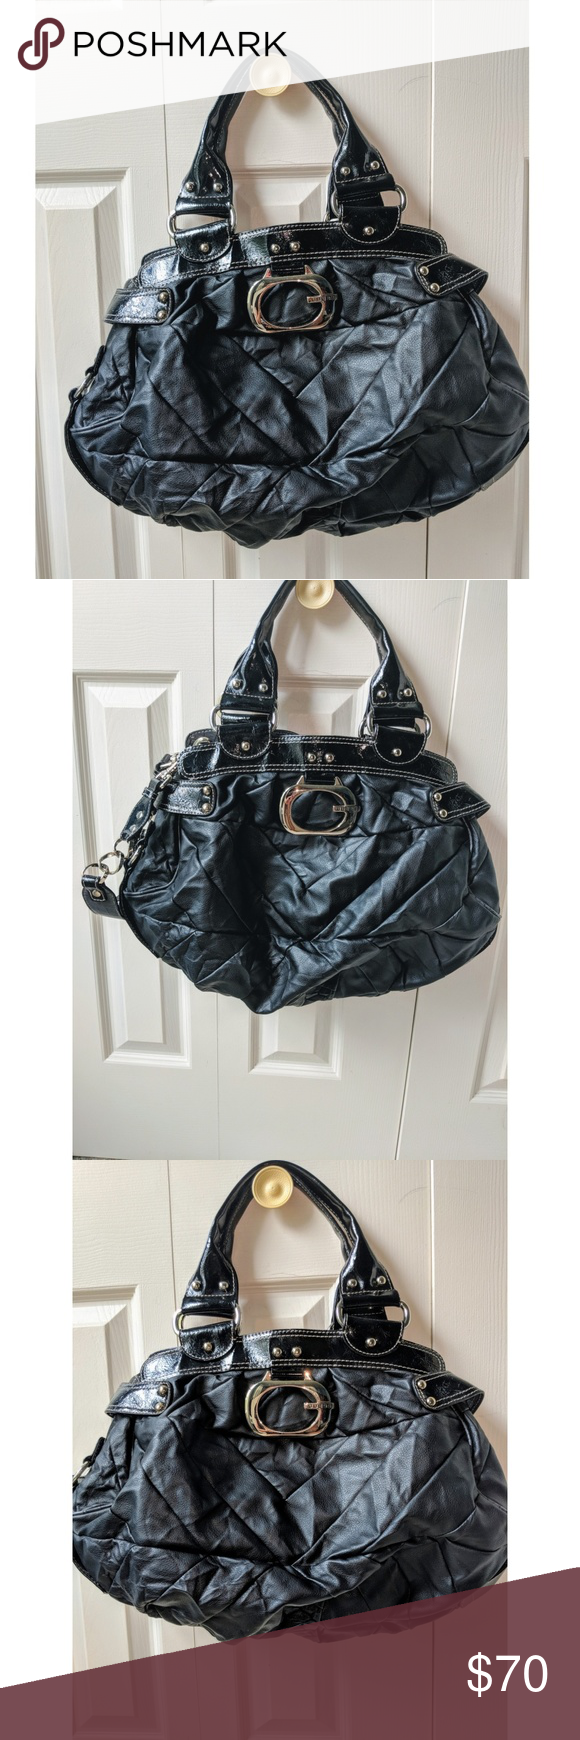 dbb64182c91 GREAT CONDITION Black with Silver Buckle Also comes with long strap  Multiple compartments inside 100% Real leather Guess Bags Totes